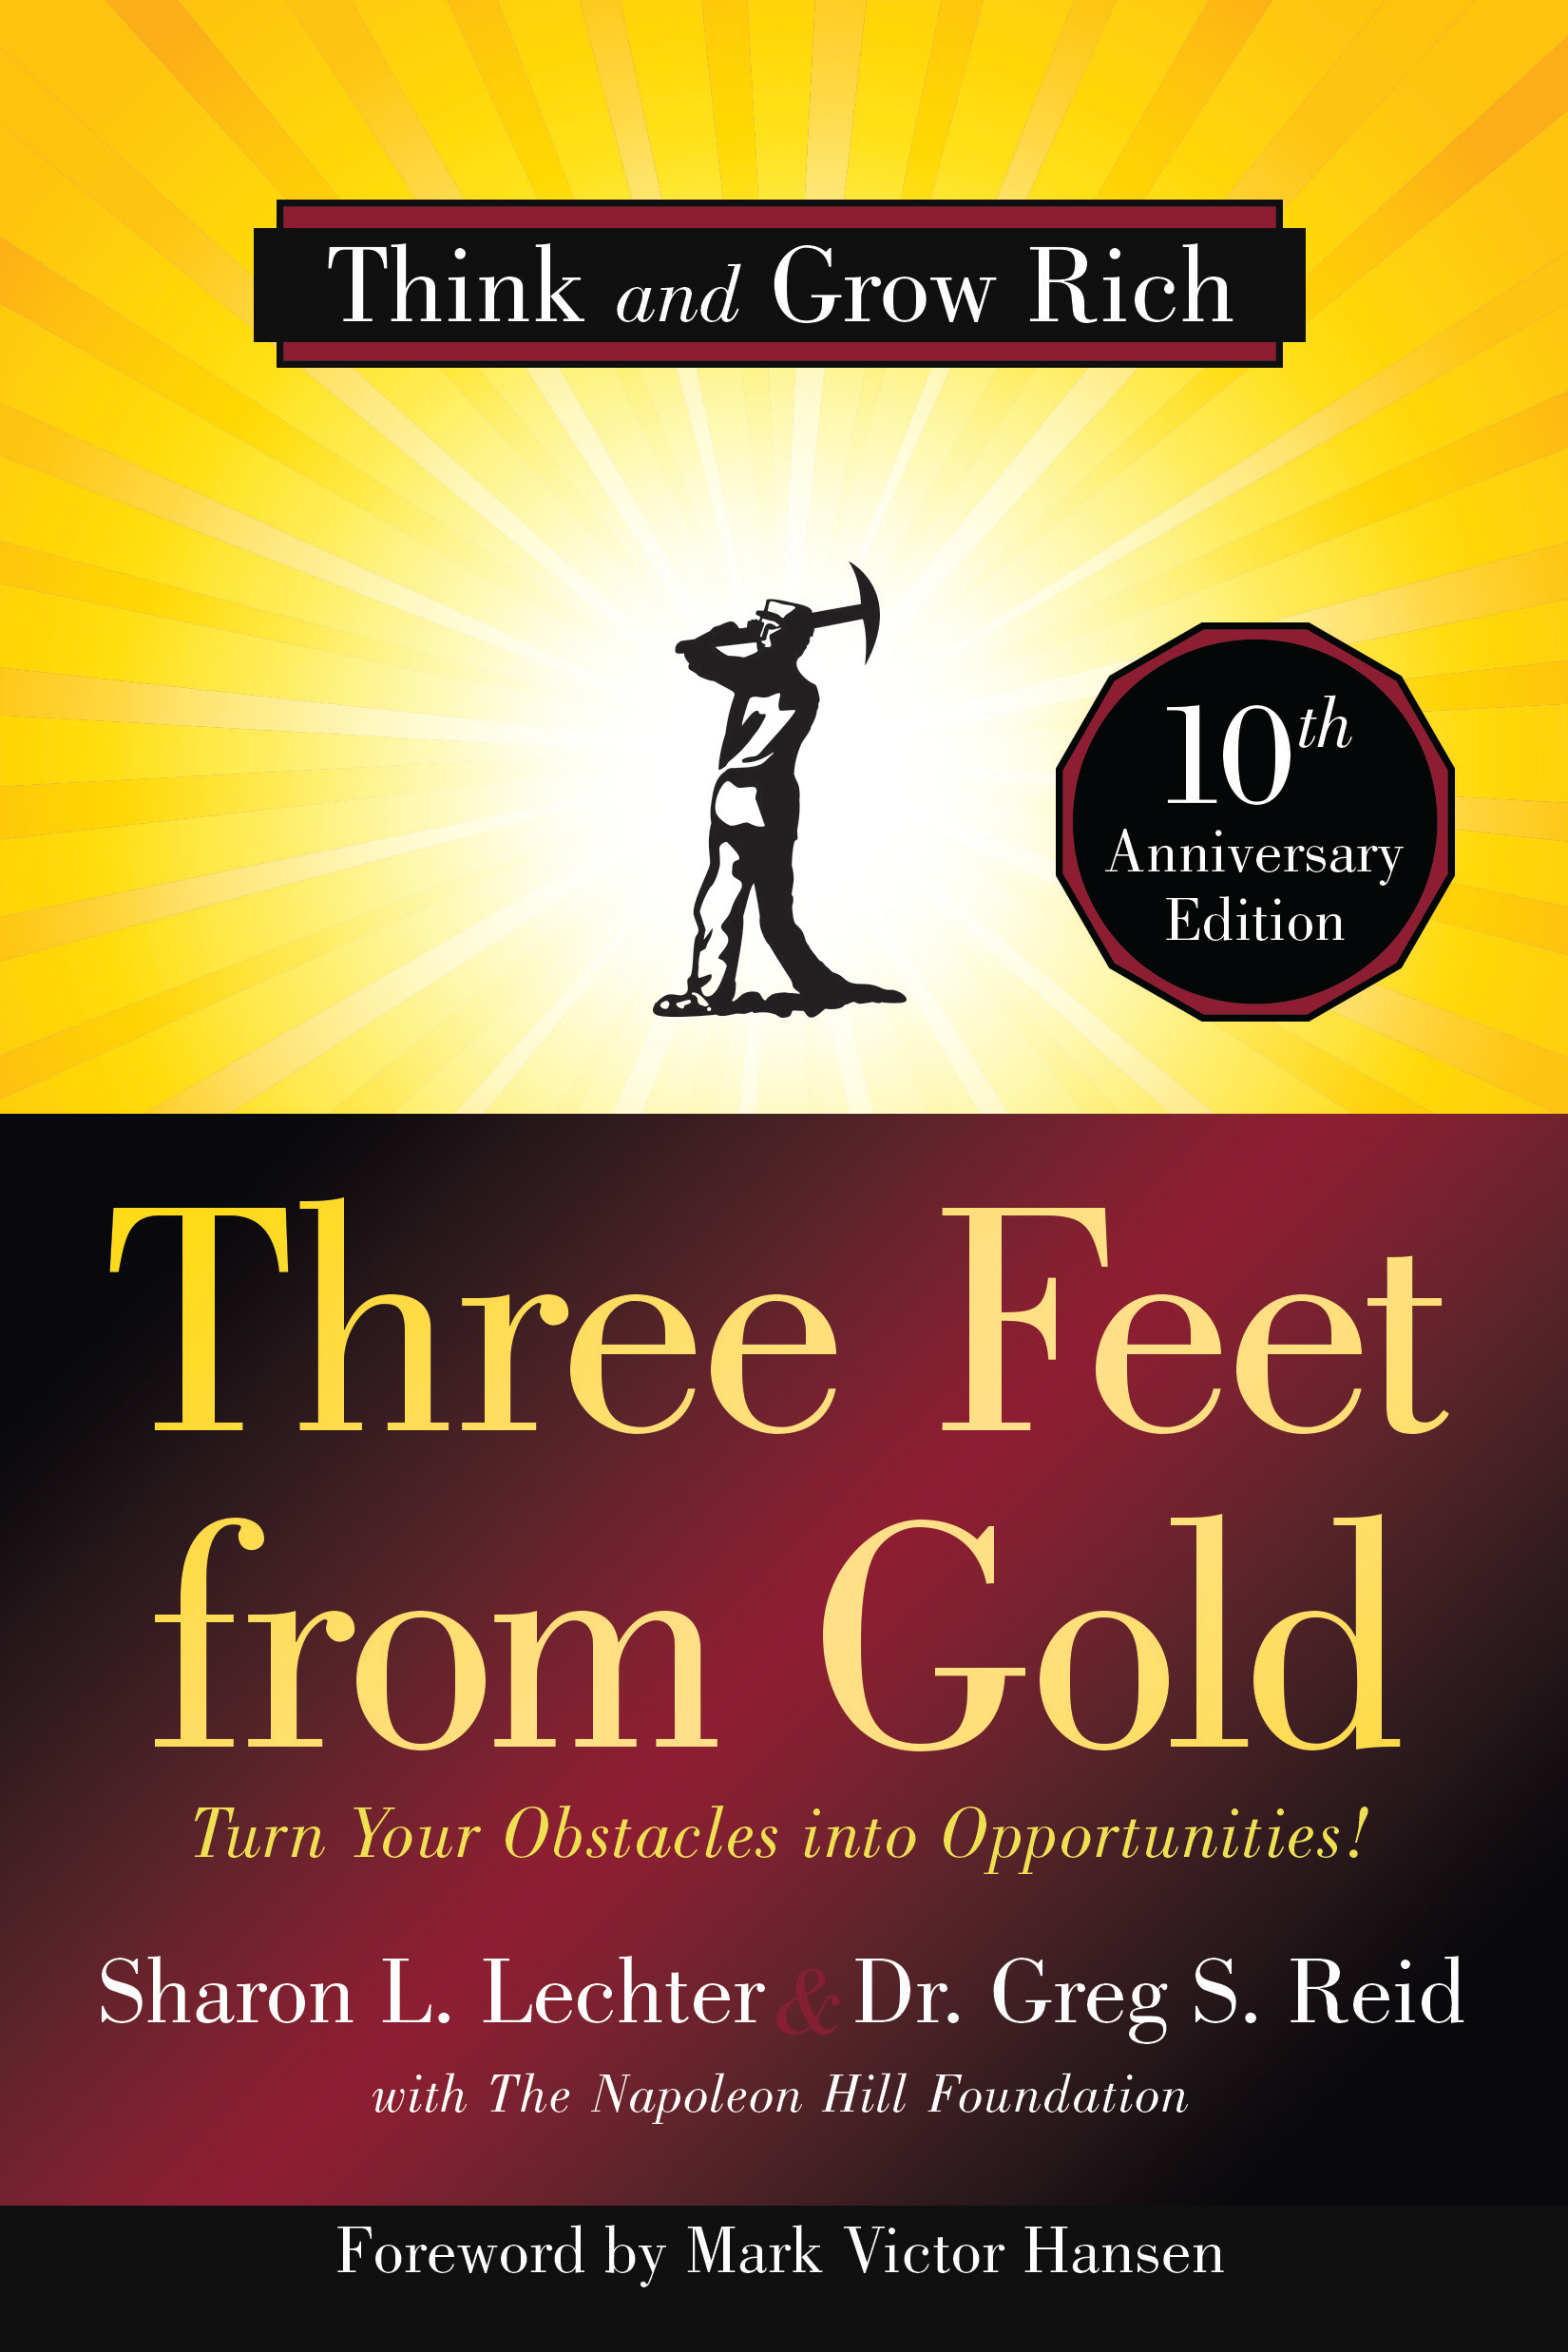 Three Feet from Gold - By Sharon L. Lechter & Dr. Greg S. Reid